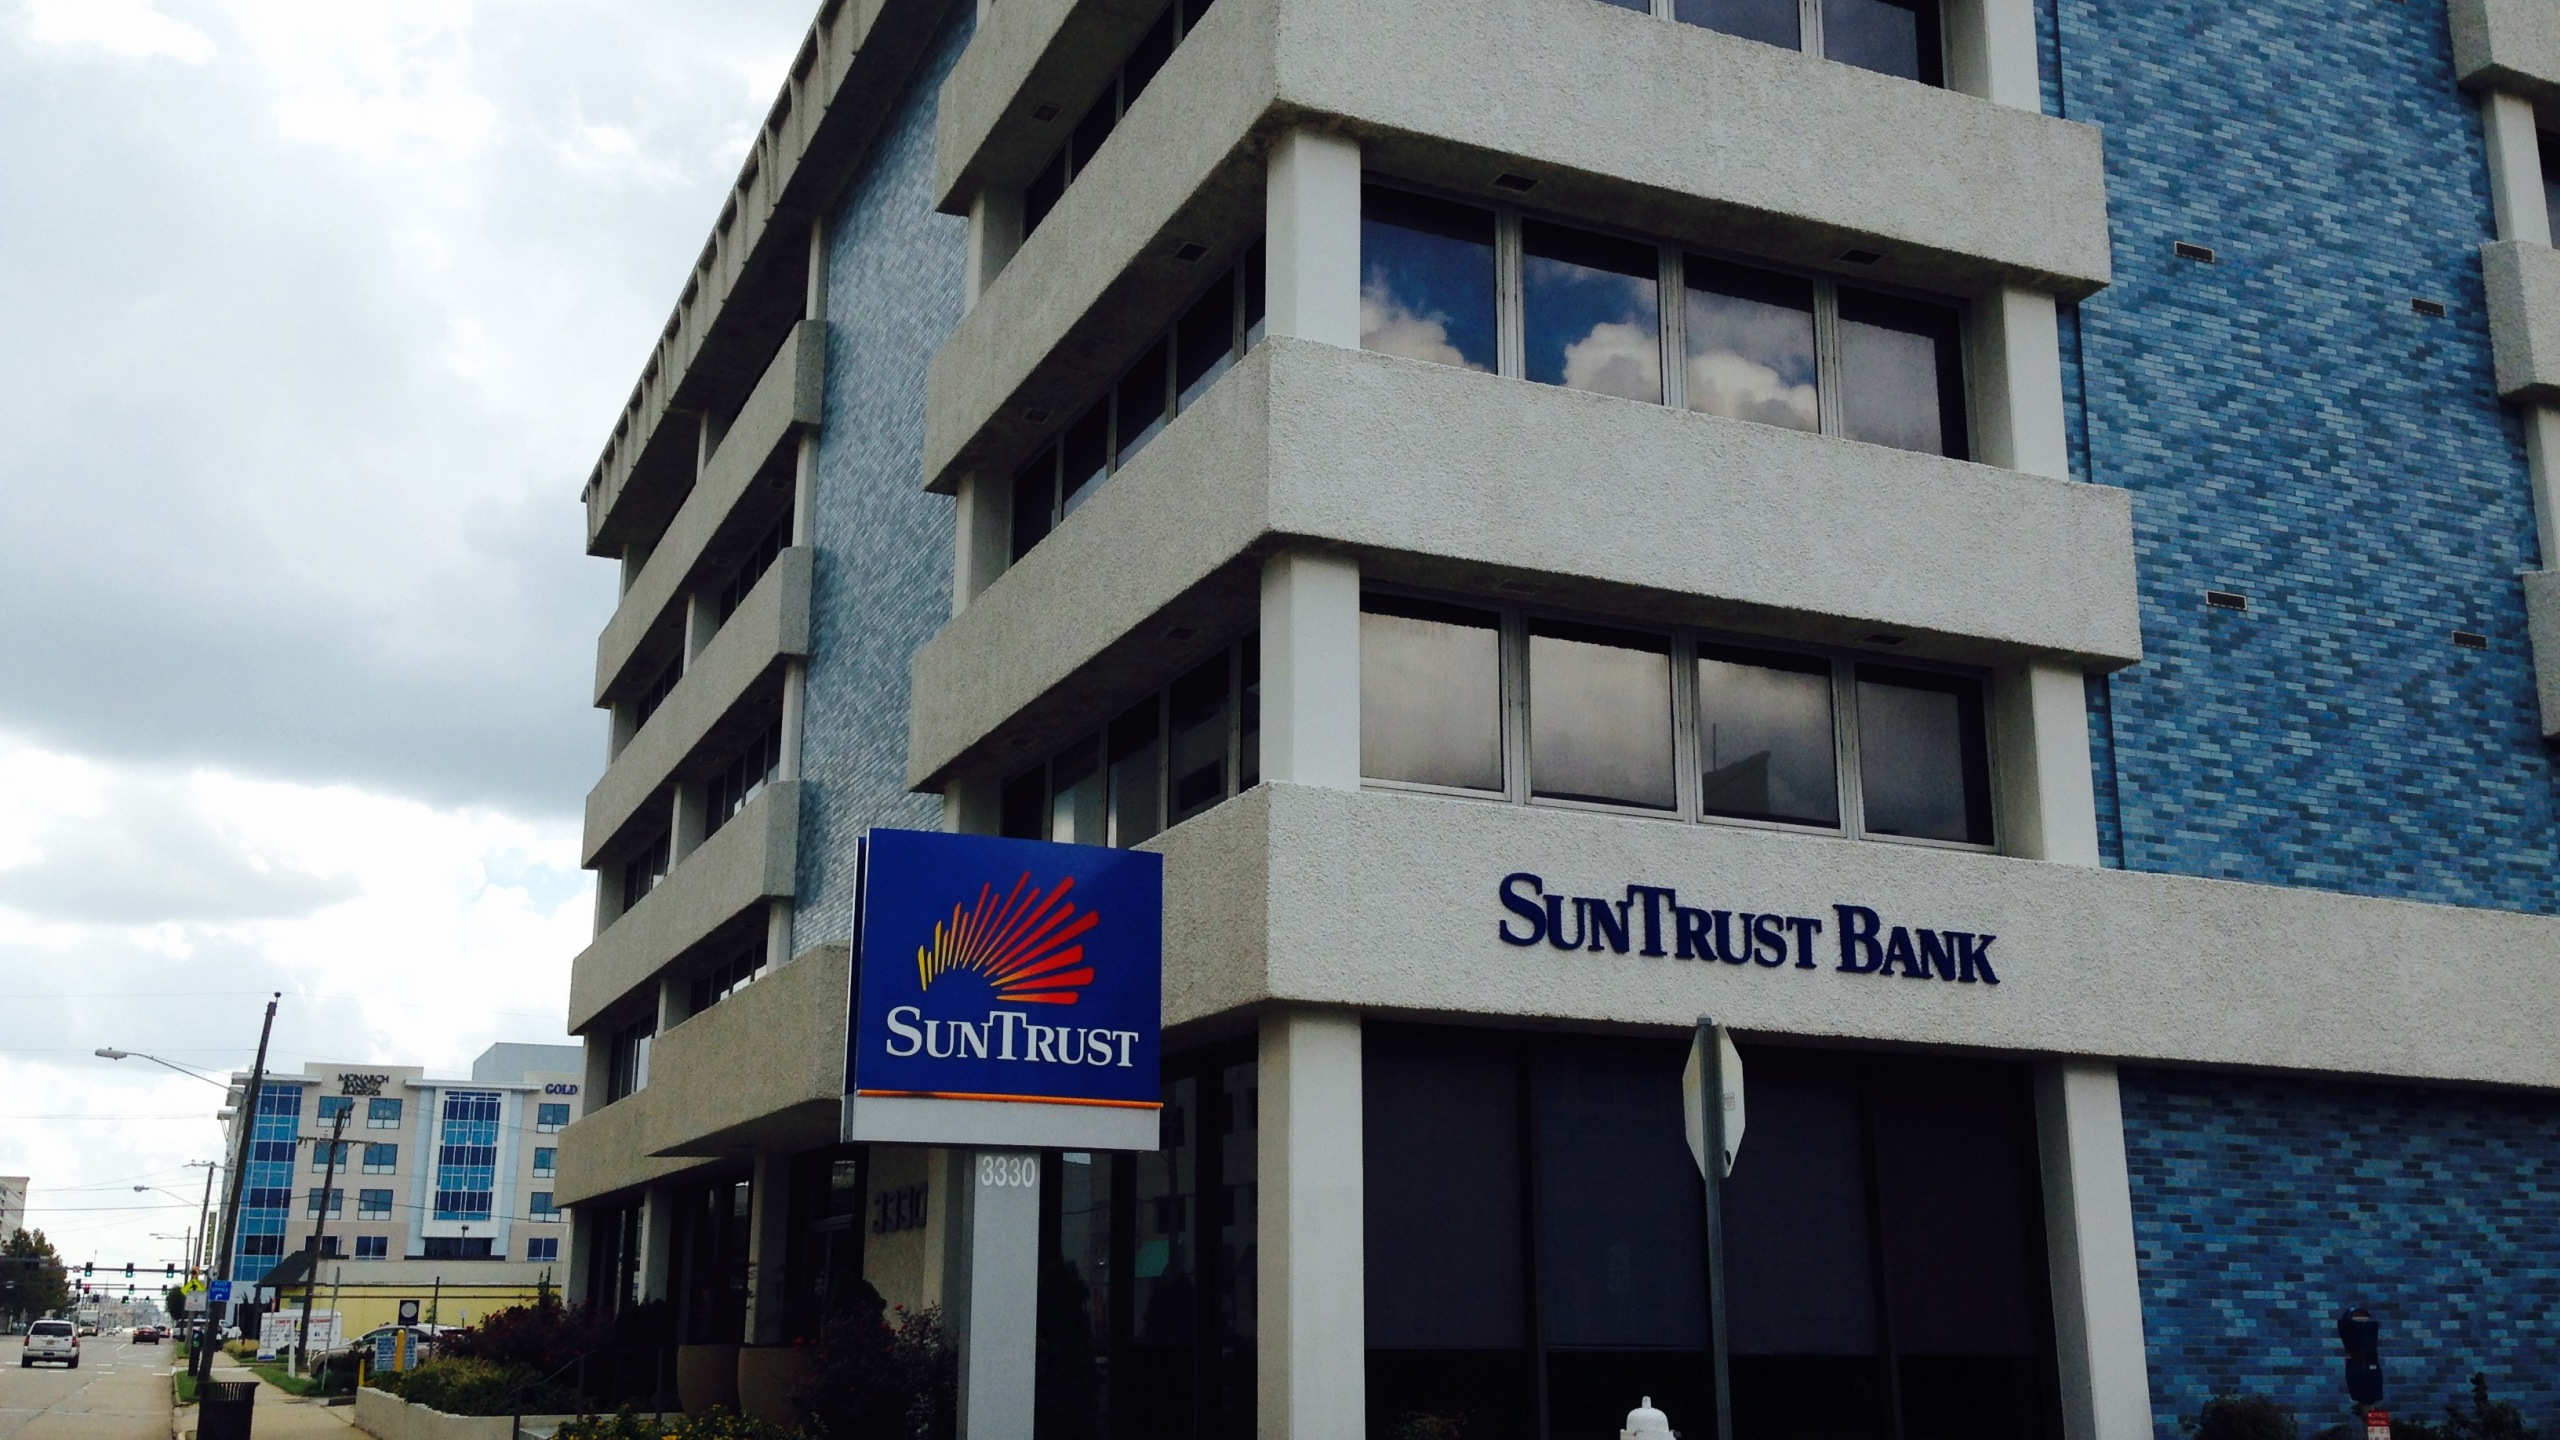 Suntrust bank_185173-873703993